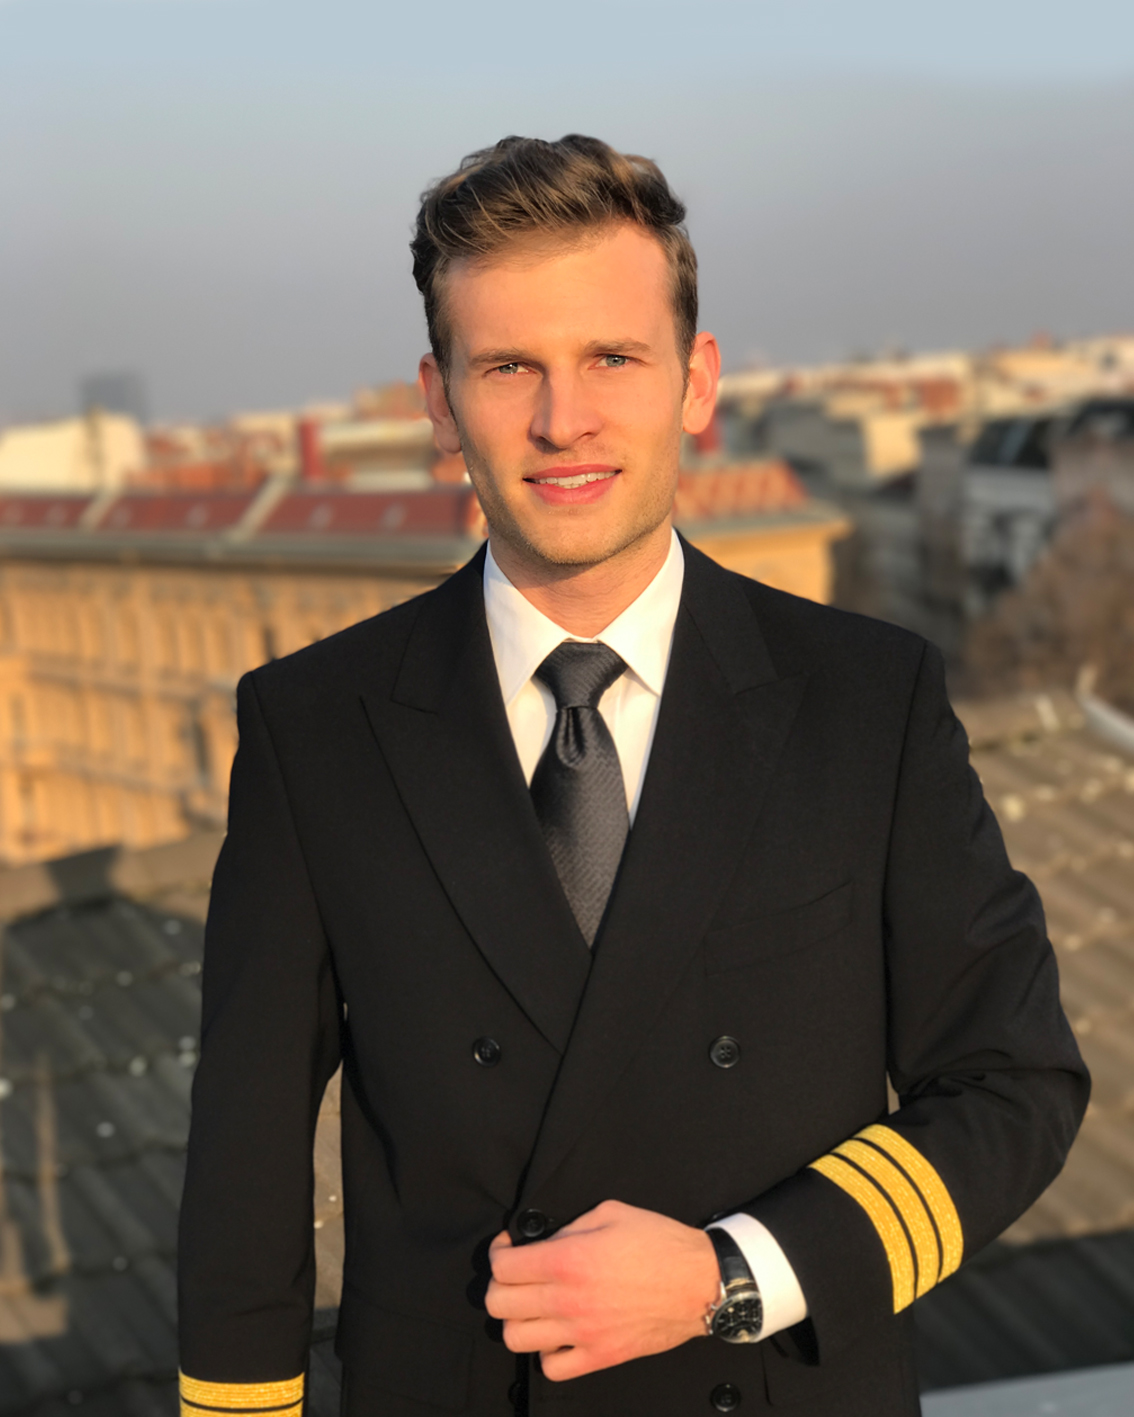 pilot patrick in new first officer uniform in berlin